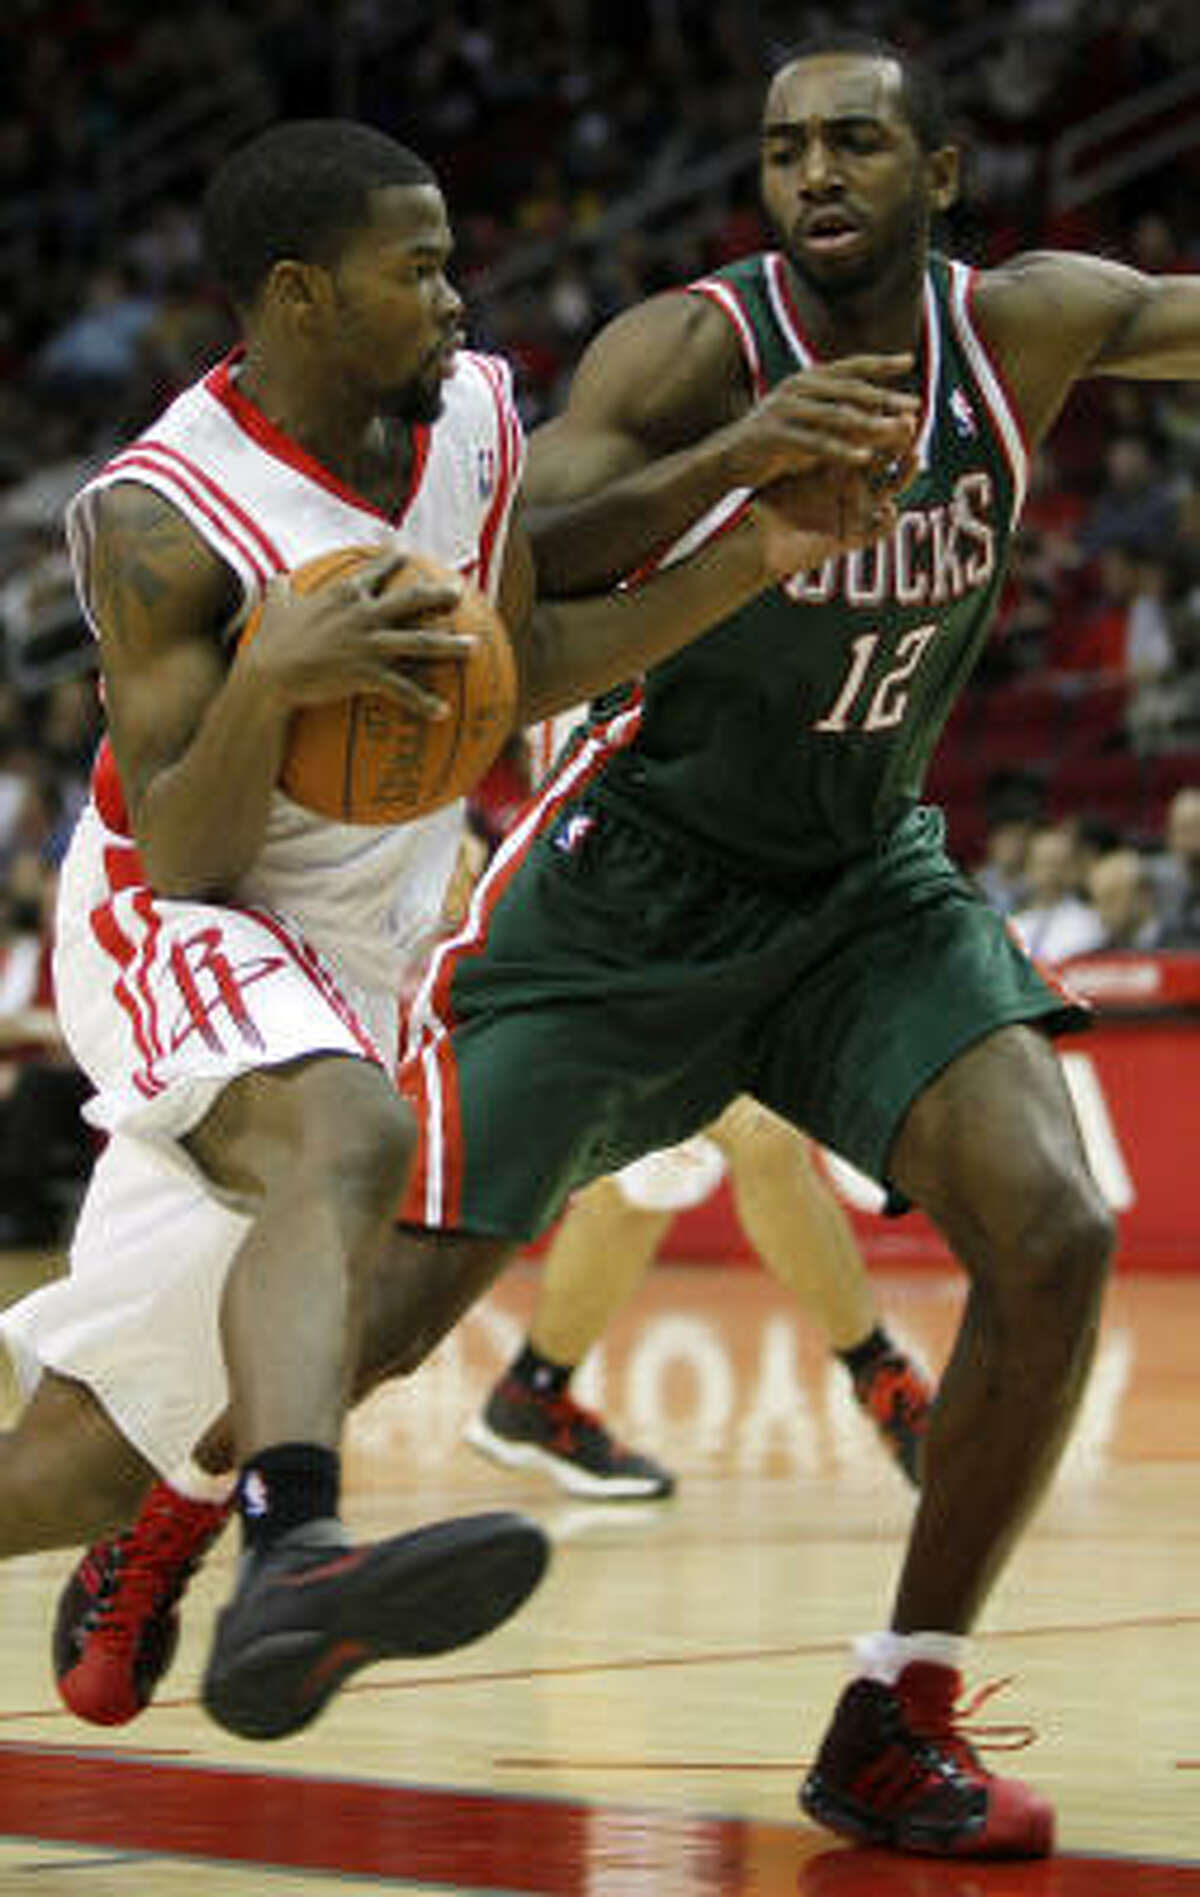 Rockets point guard Aaron Brooks works to get around Bucks forward Luc Mbah a Moute during the fourth quarter.